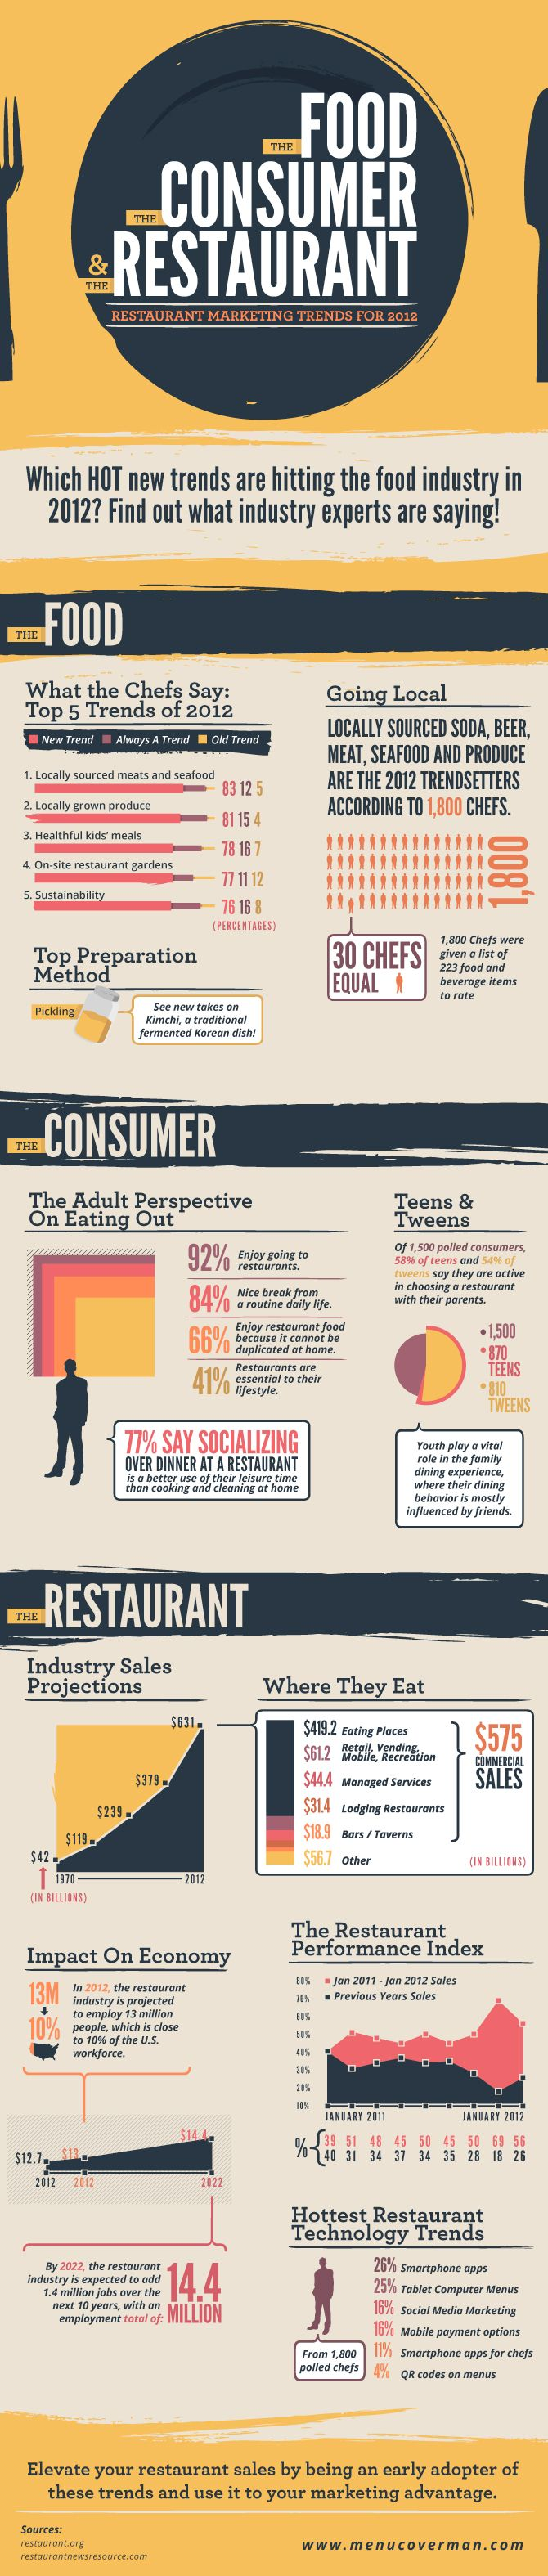 The latest restaurant trends in an infographic. Big picture numbers for the restaurant industry are not necessarily a reflection of your local commun